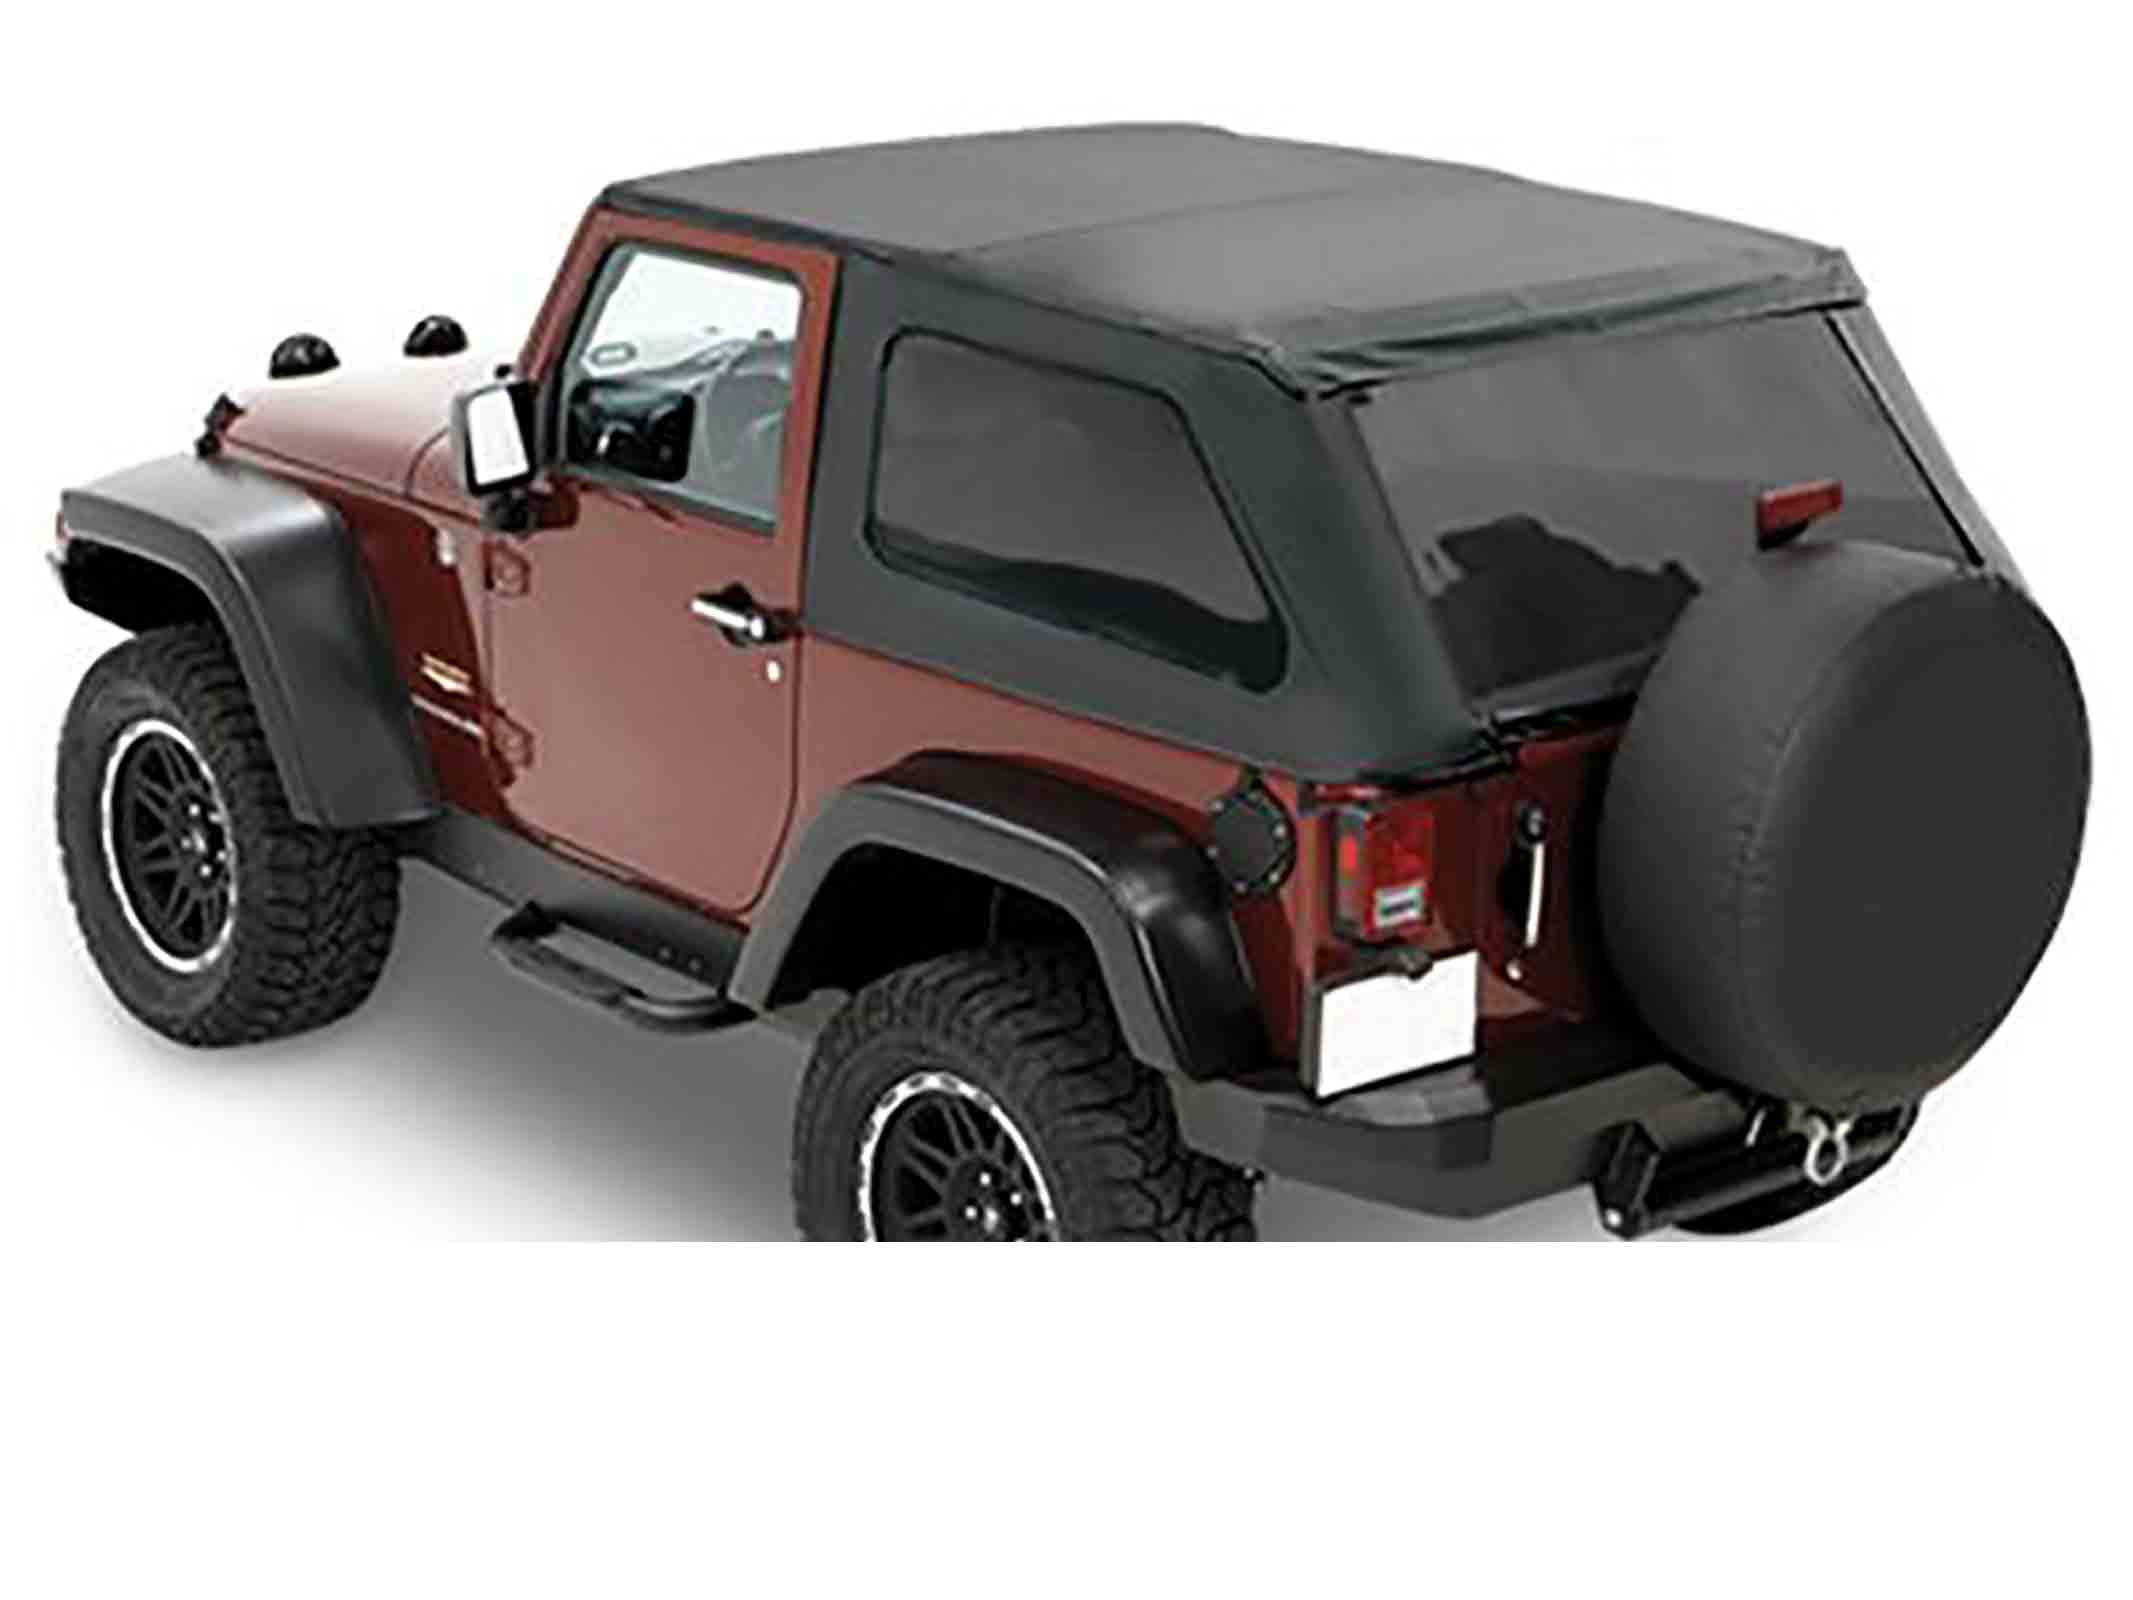 Softtop soft top capottina ricambio trektop nx wrangler jk 07 17 black diamond 2 porte ricambi jeep